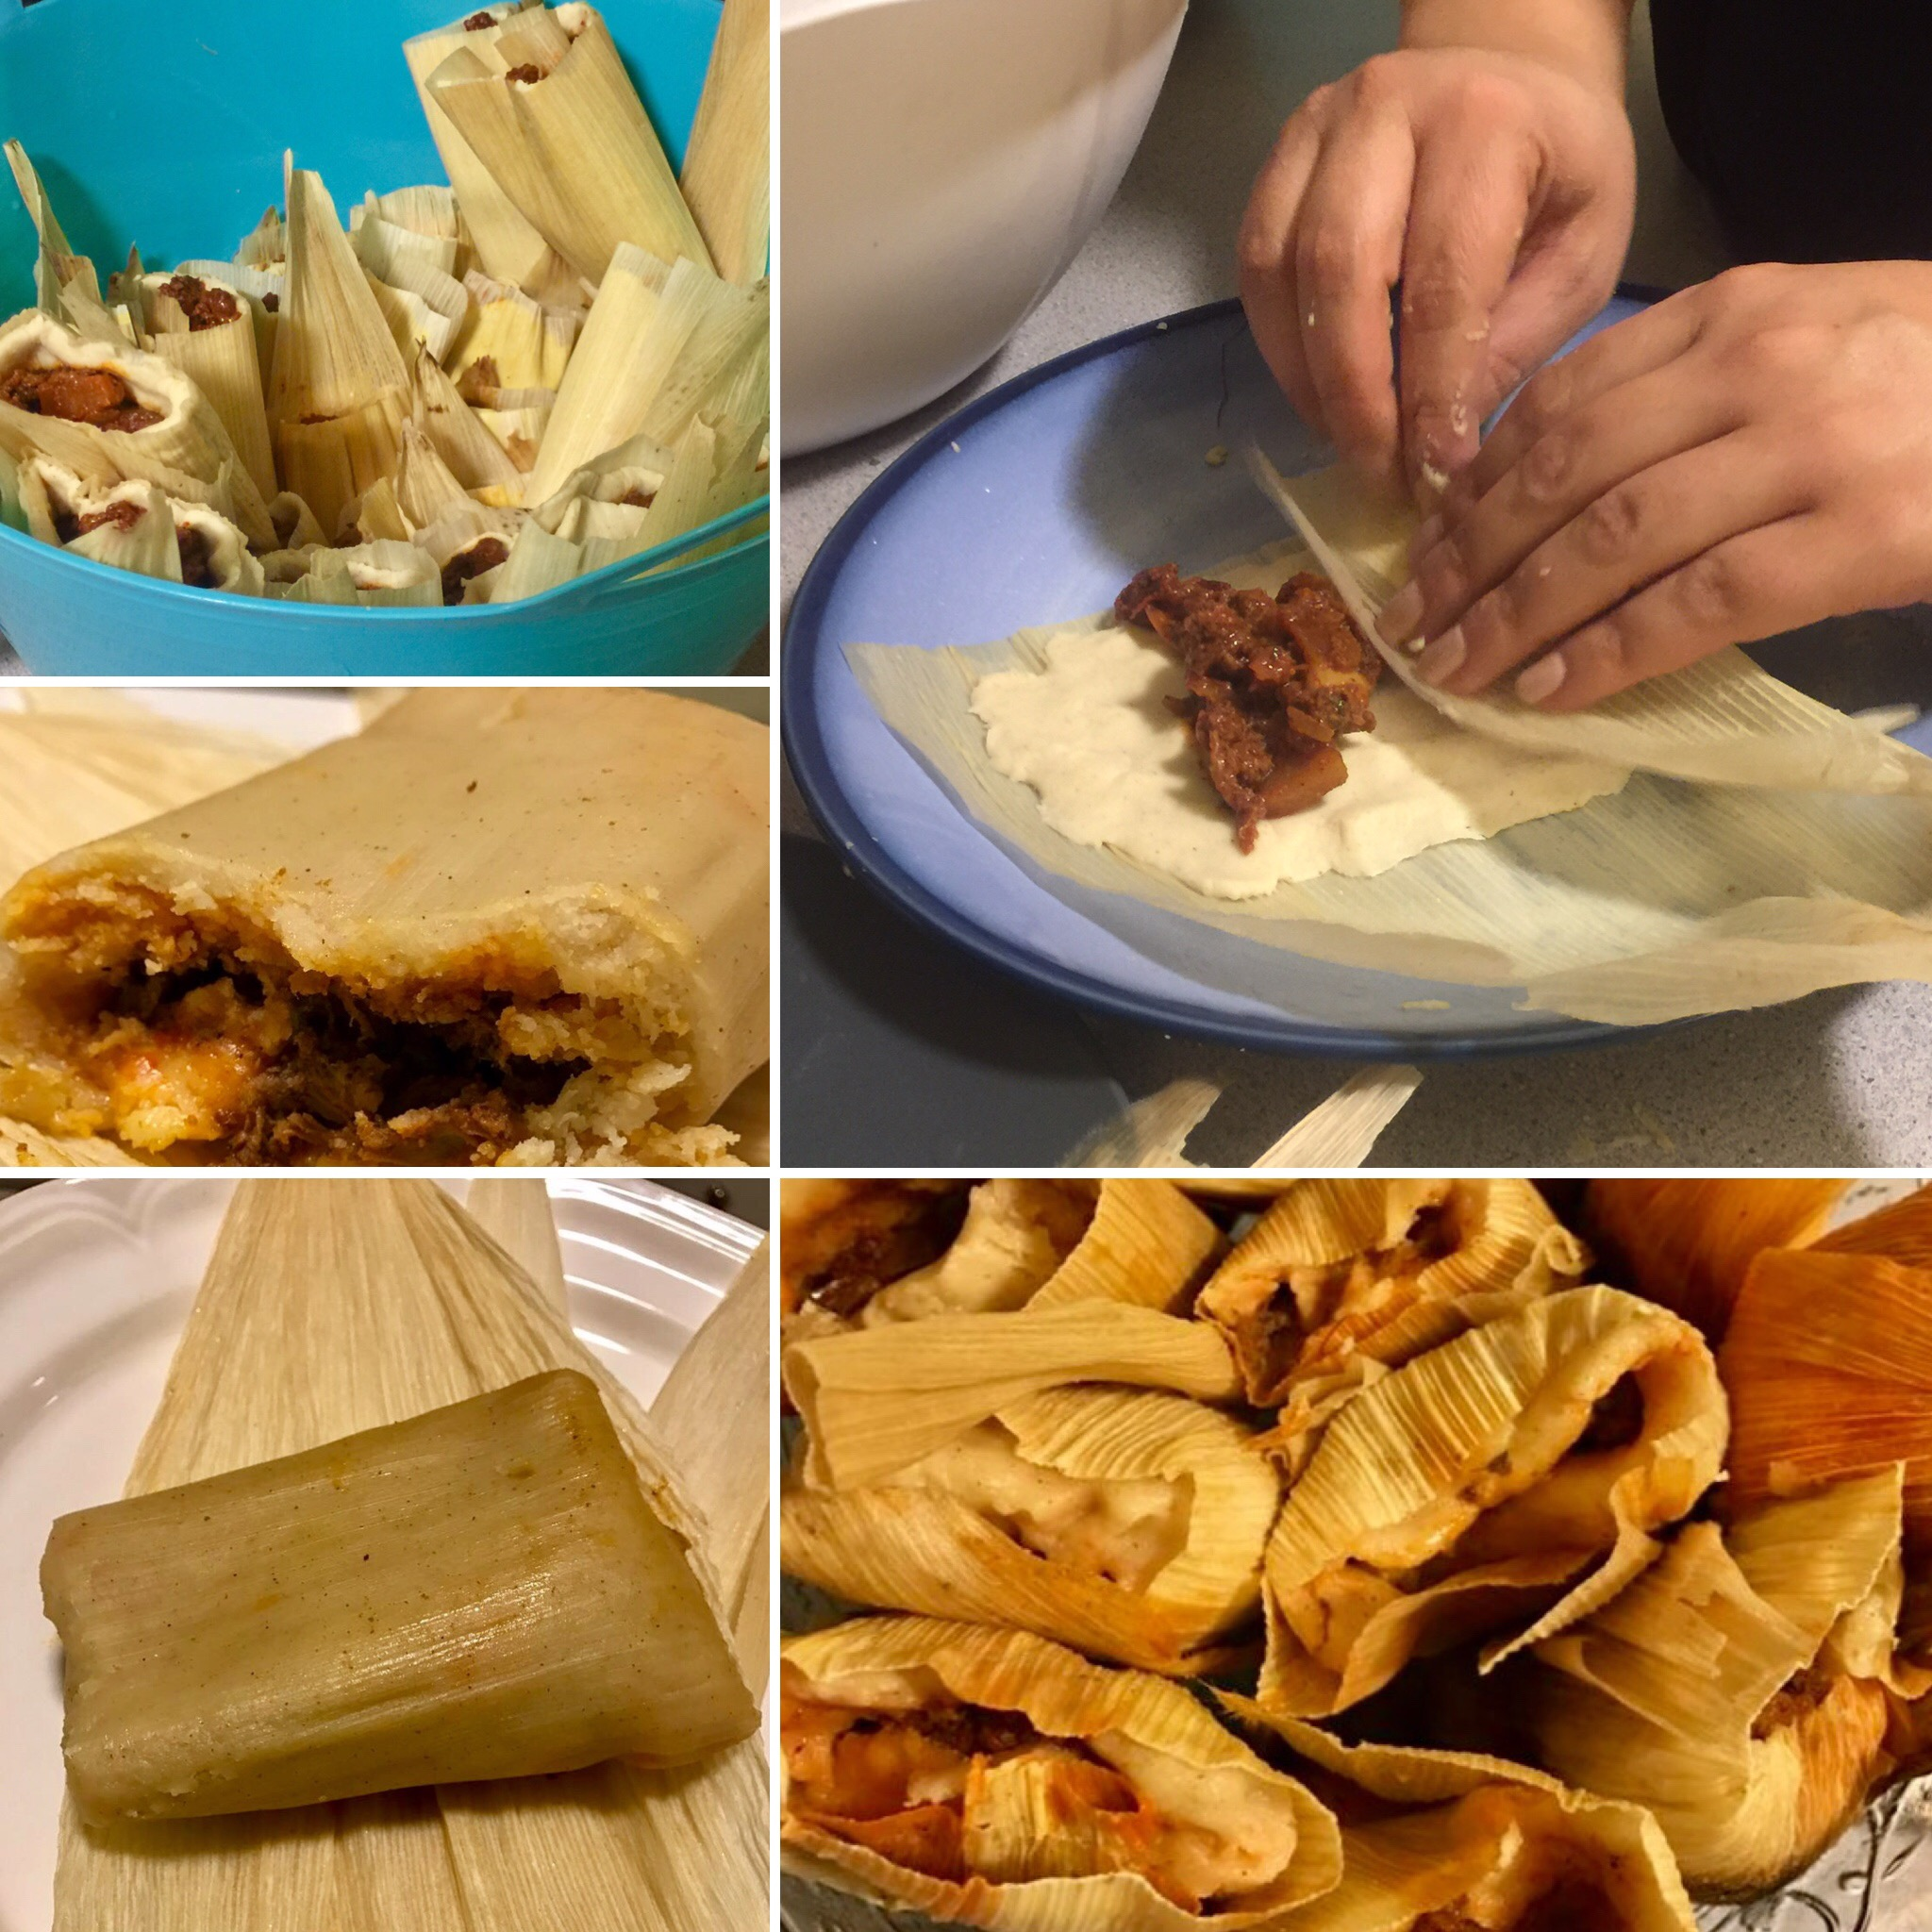 Tamale goodness!